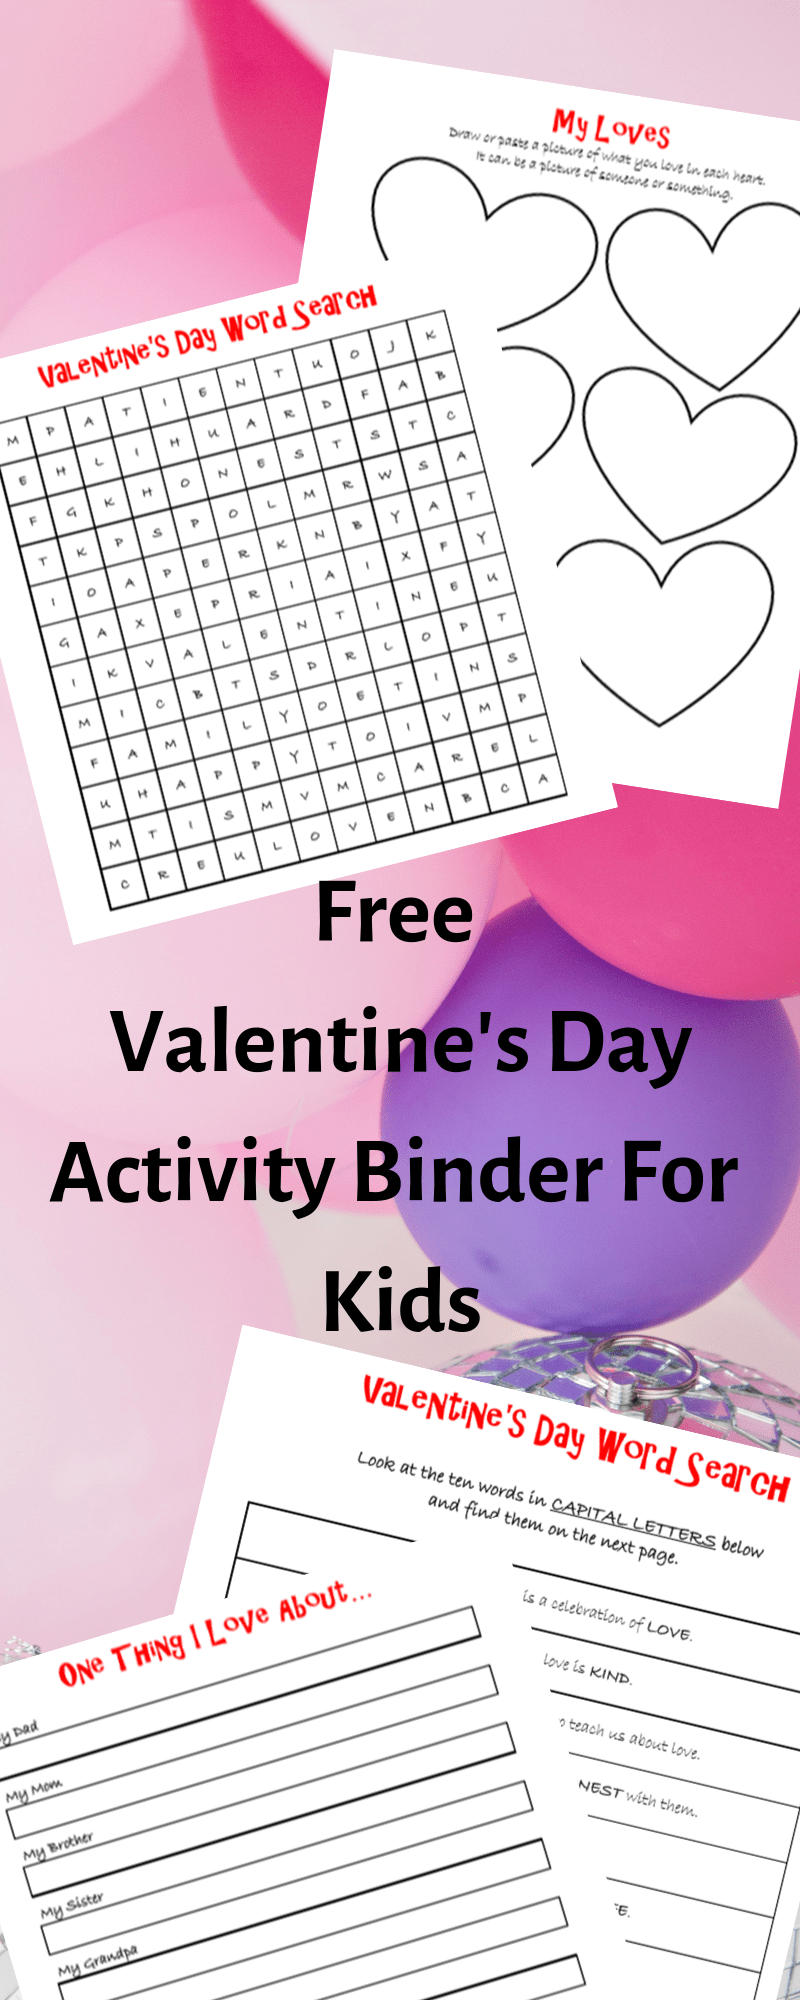 Free Valentine's Day activity binder for kids. #freeprintables #kidsactivities #preschoolers #busymom